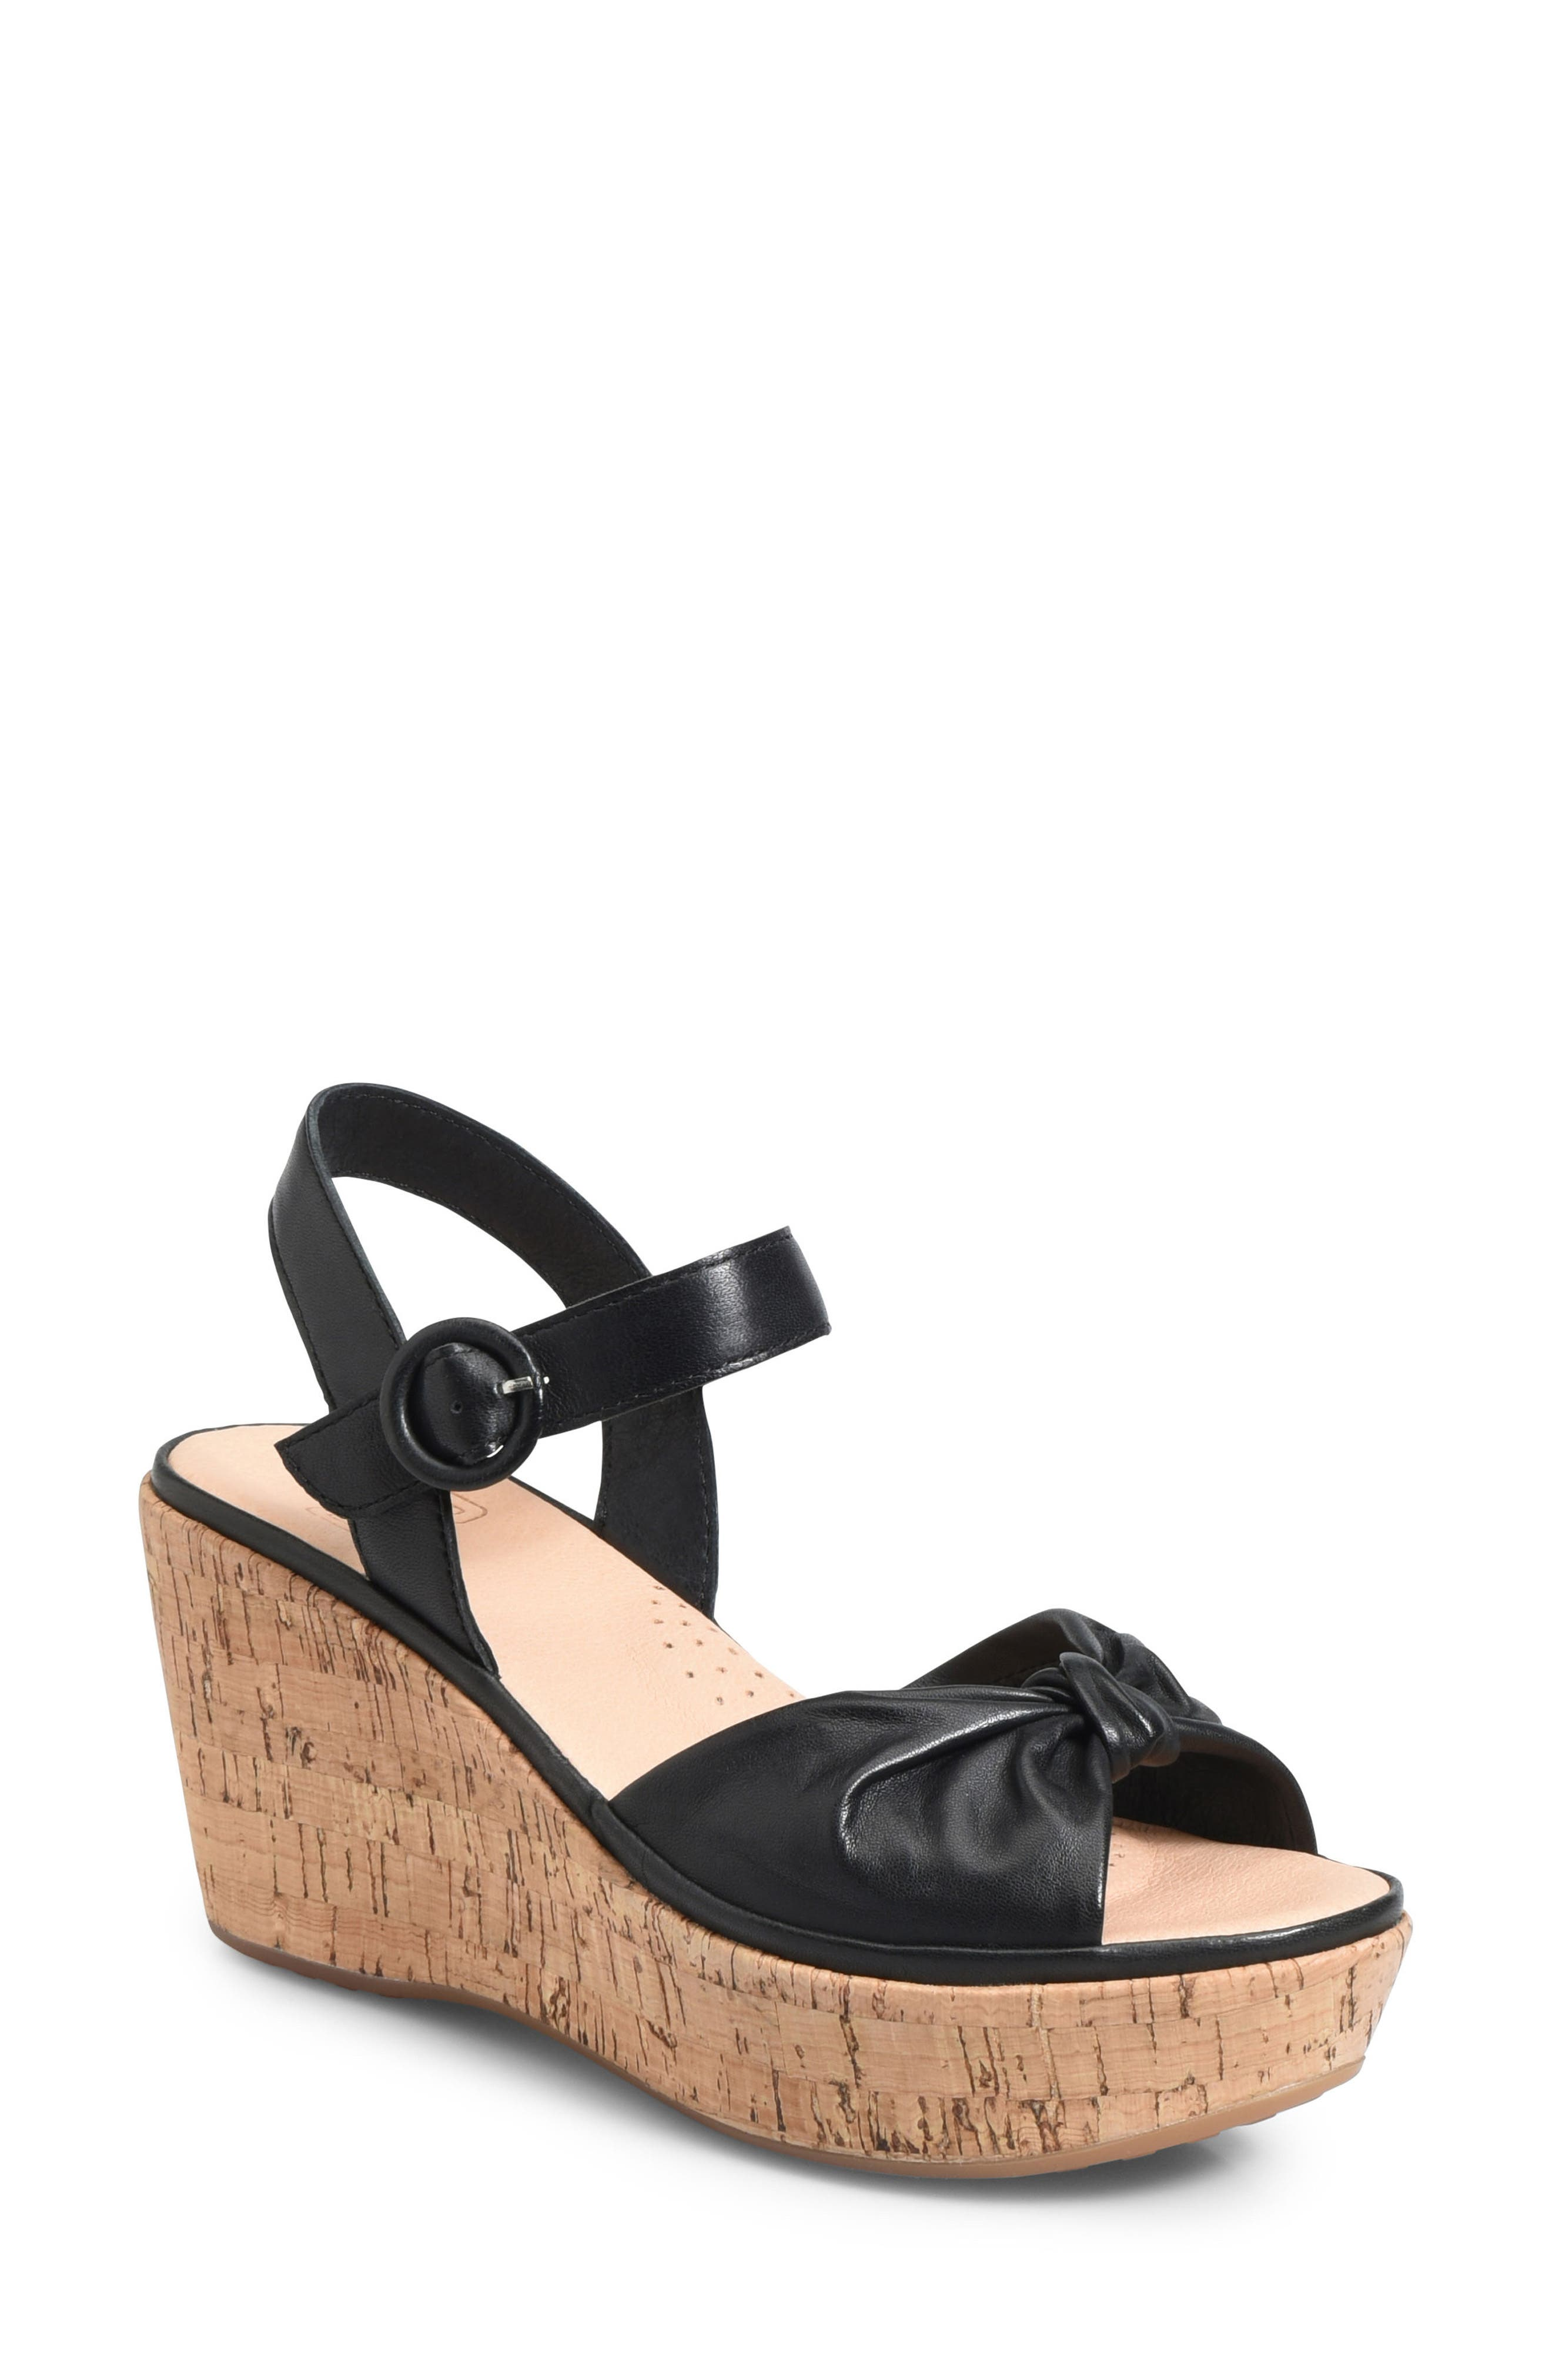 ONO, Heavenly Platform Wedge Sandal, Main thumbnail 1, color, BLACK LEATHER